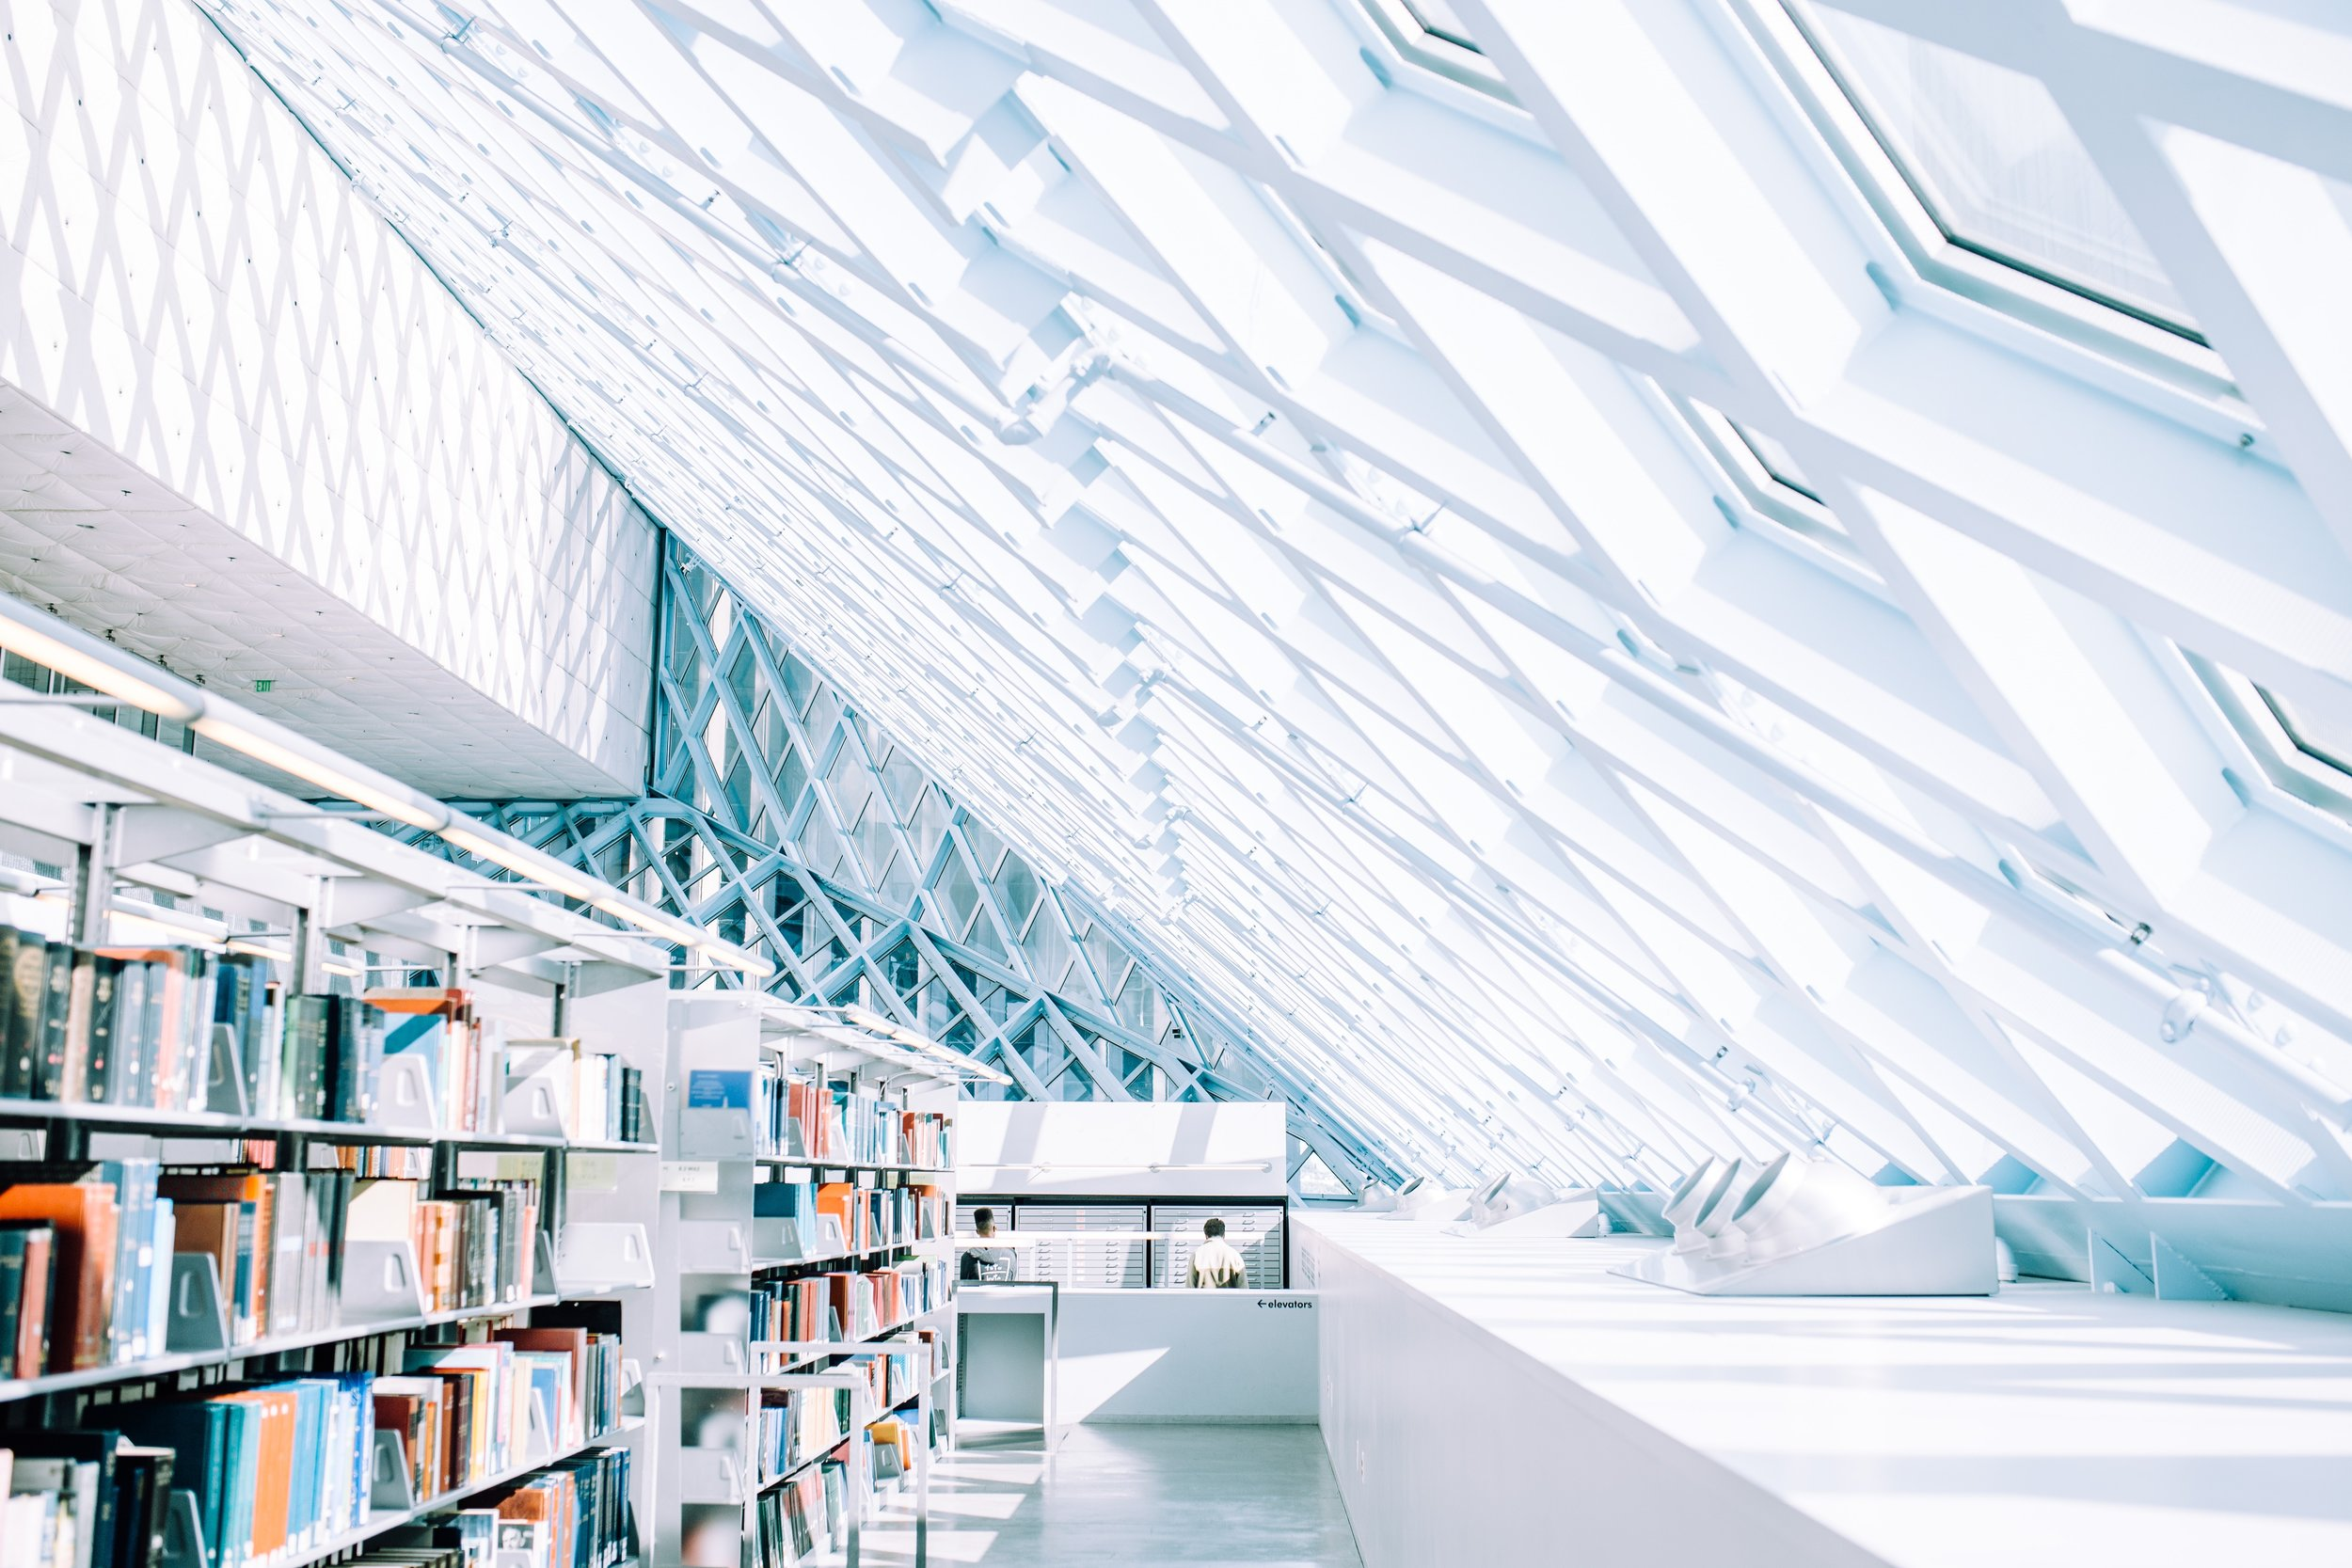 There are lots of great things about Seattle, but its library is certainly top of the list.